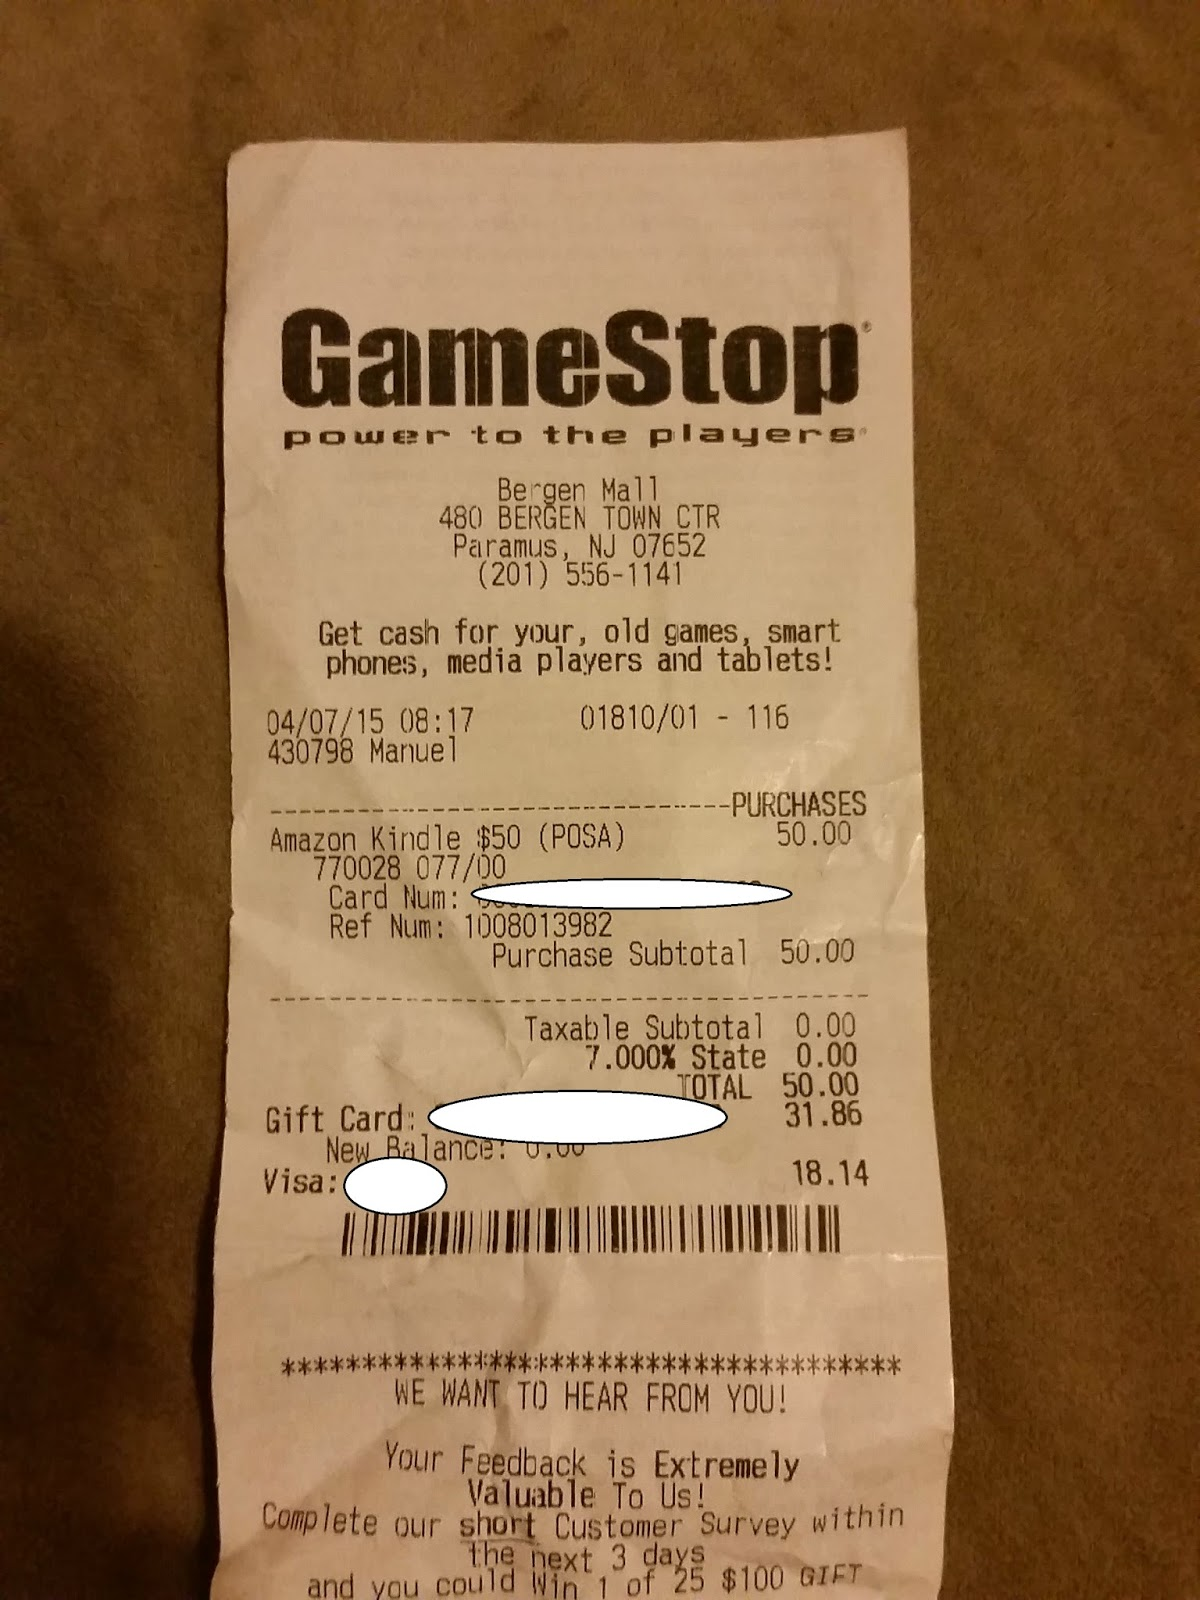 Oren's Money Saver: Upgrade GameStop Gift Card to Amazon Gift Card